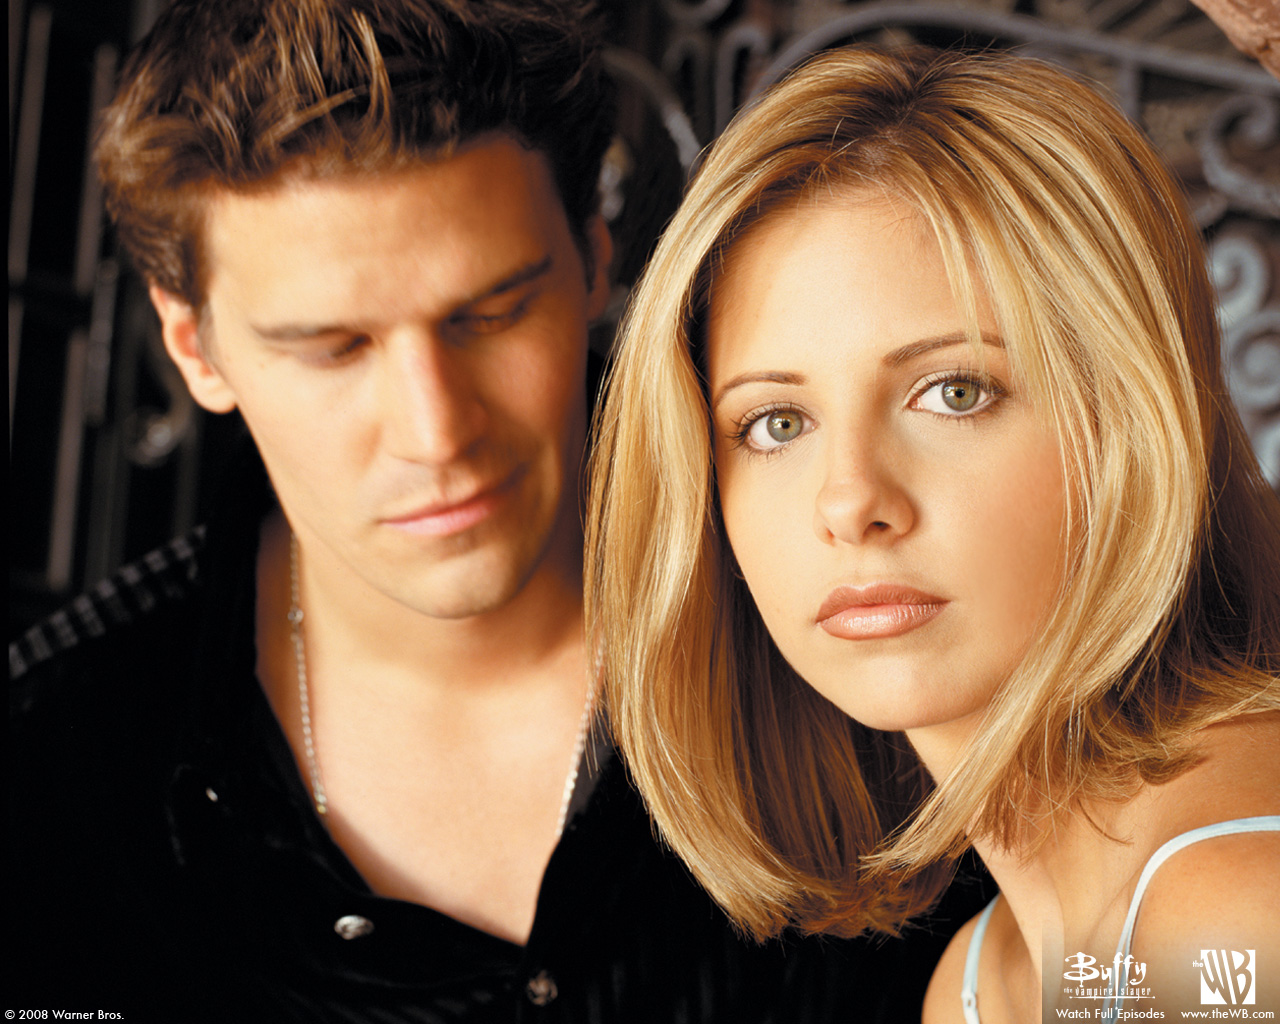 http://3.bp.blogspot.com/-lQwiYLMd4kk/ULNdPw4rvWI/AAAAAAAABYg/VEiH34kHXfA/s1600/sarah_michelle_gellar_buffy_the_vampire_slayer_david_desktop_1280x1024_hd-wallpaper-554526.jpg